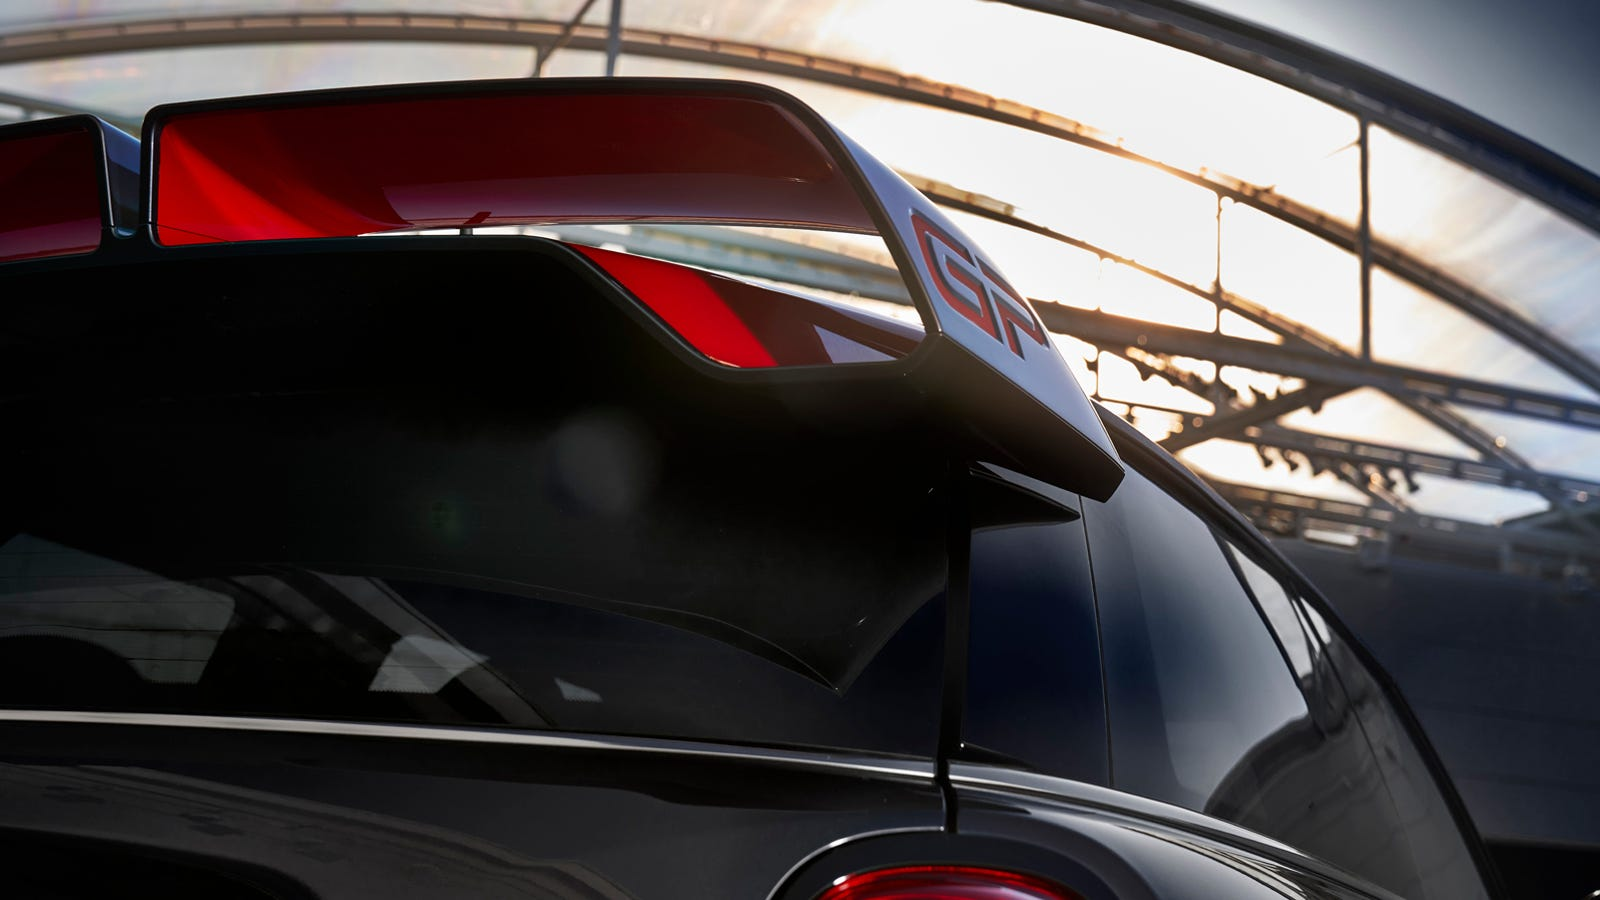 2020 Mini John Cooper Works GP is confirmed at 300 hp